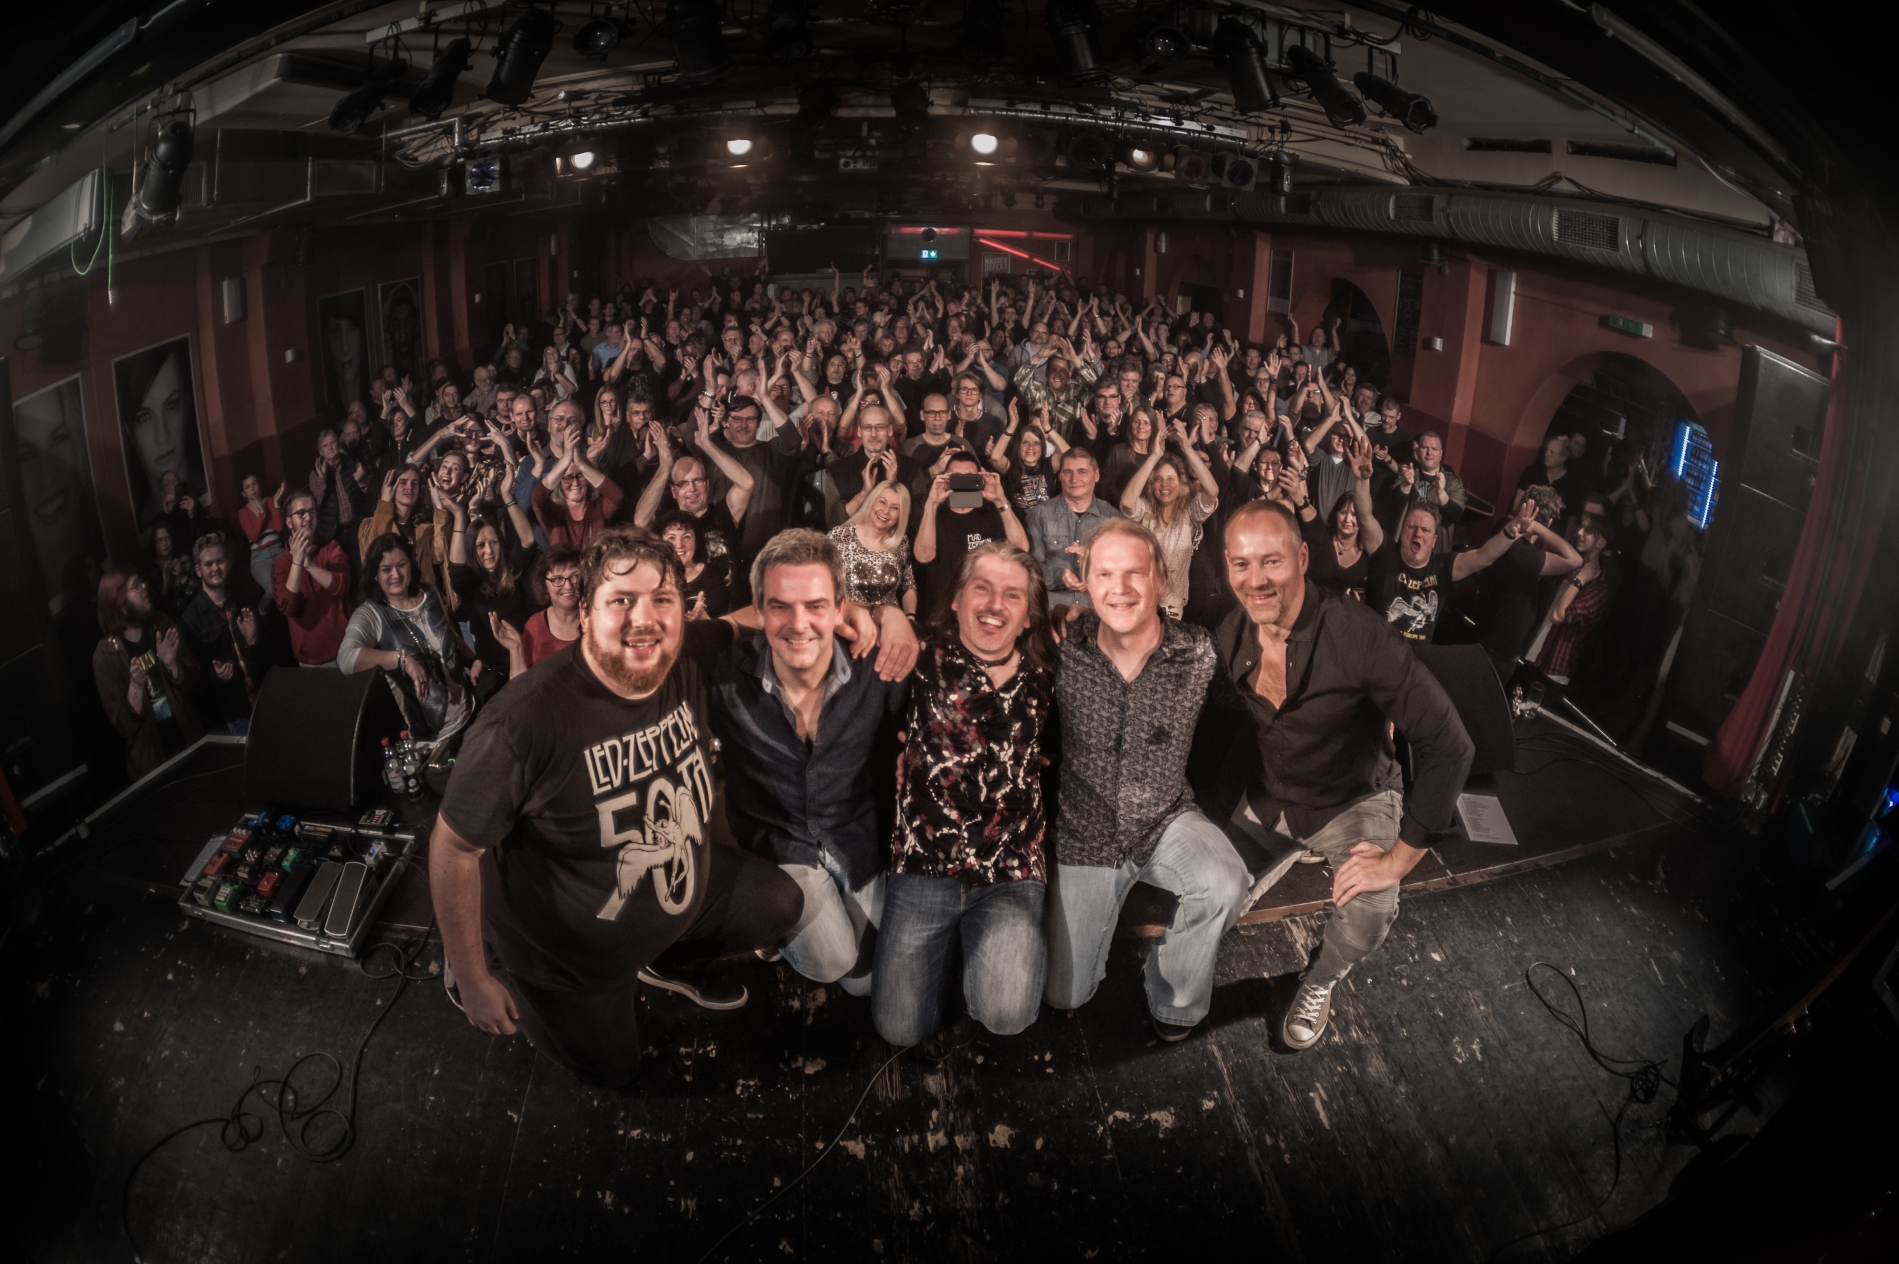 Mad_Zeppelin__2019_02_08_Mad_Zeppelin_Collo-Saal_Aschaffenburg_D7C_1162_